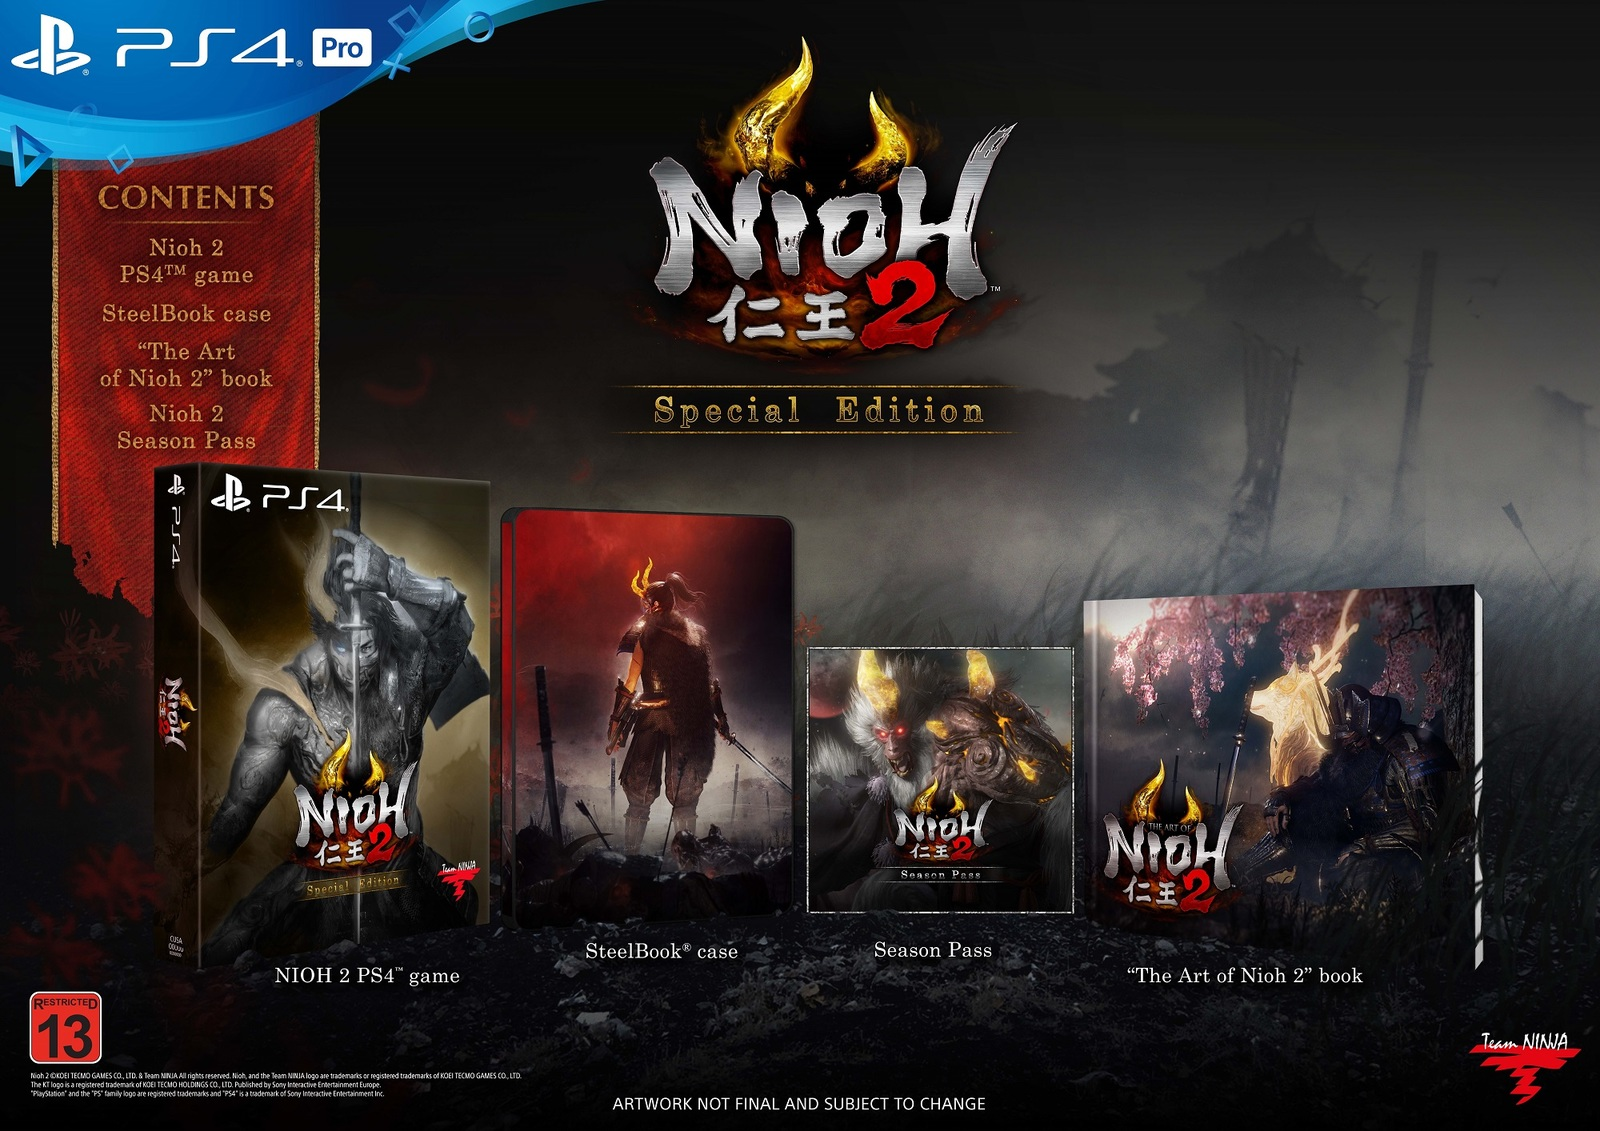 Nioh 2 Special Edition for PS4 image